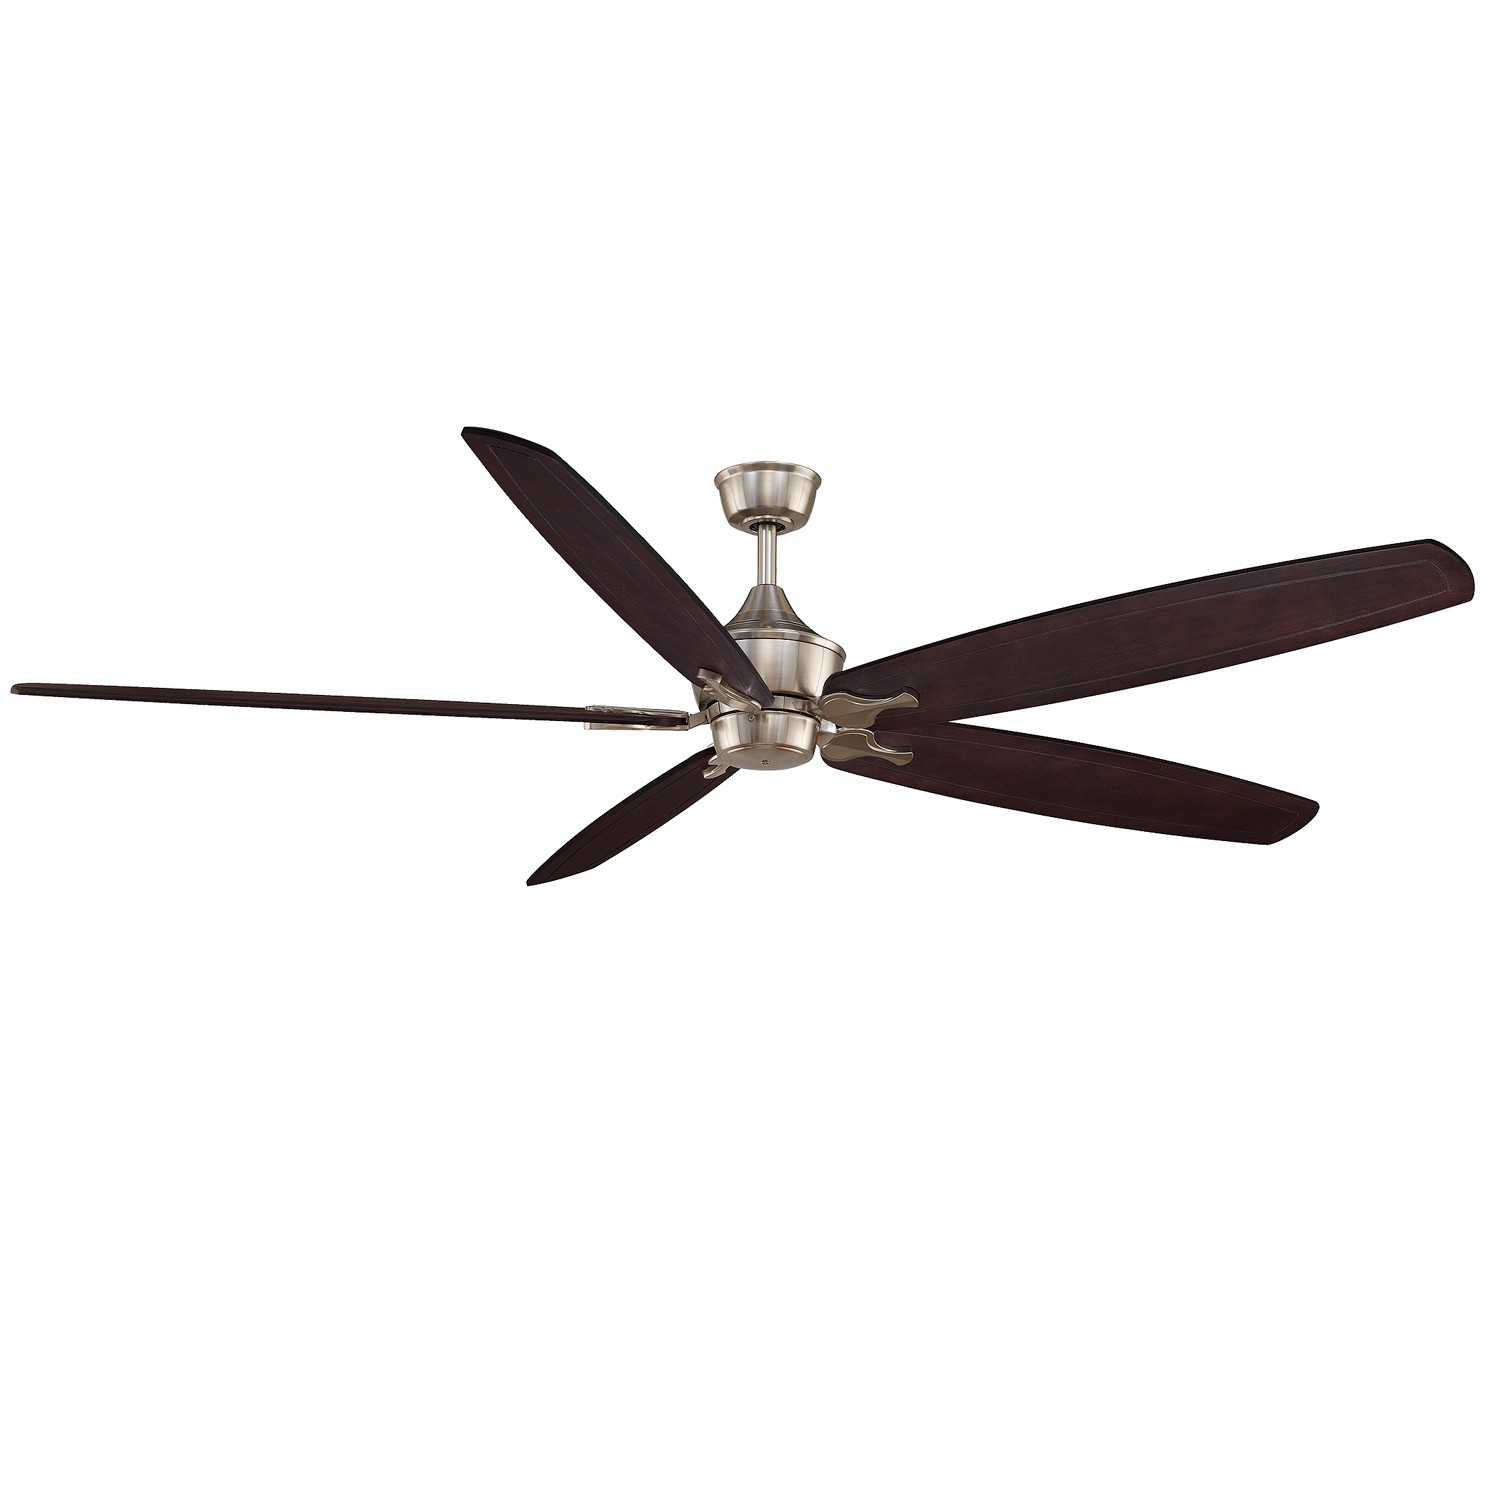 Ceiling Fans Home & Furniture Design Kitchenagenda